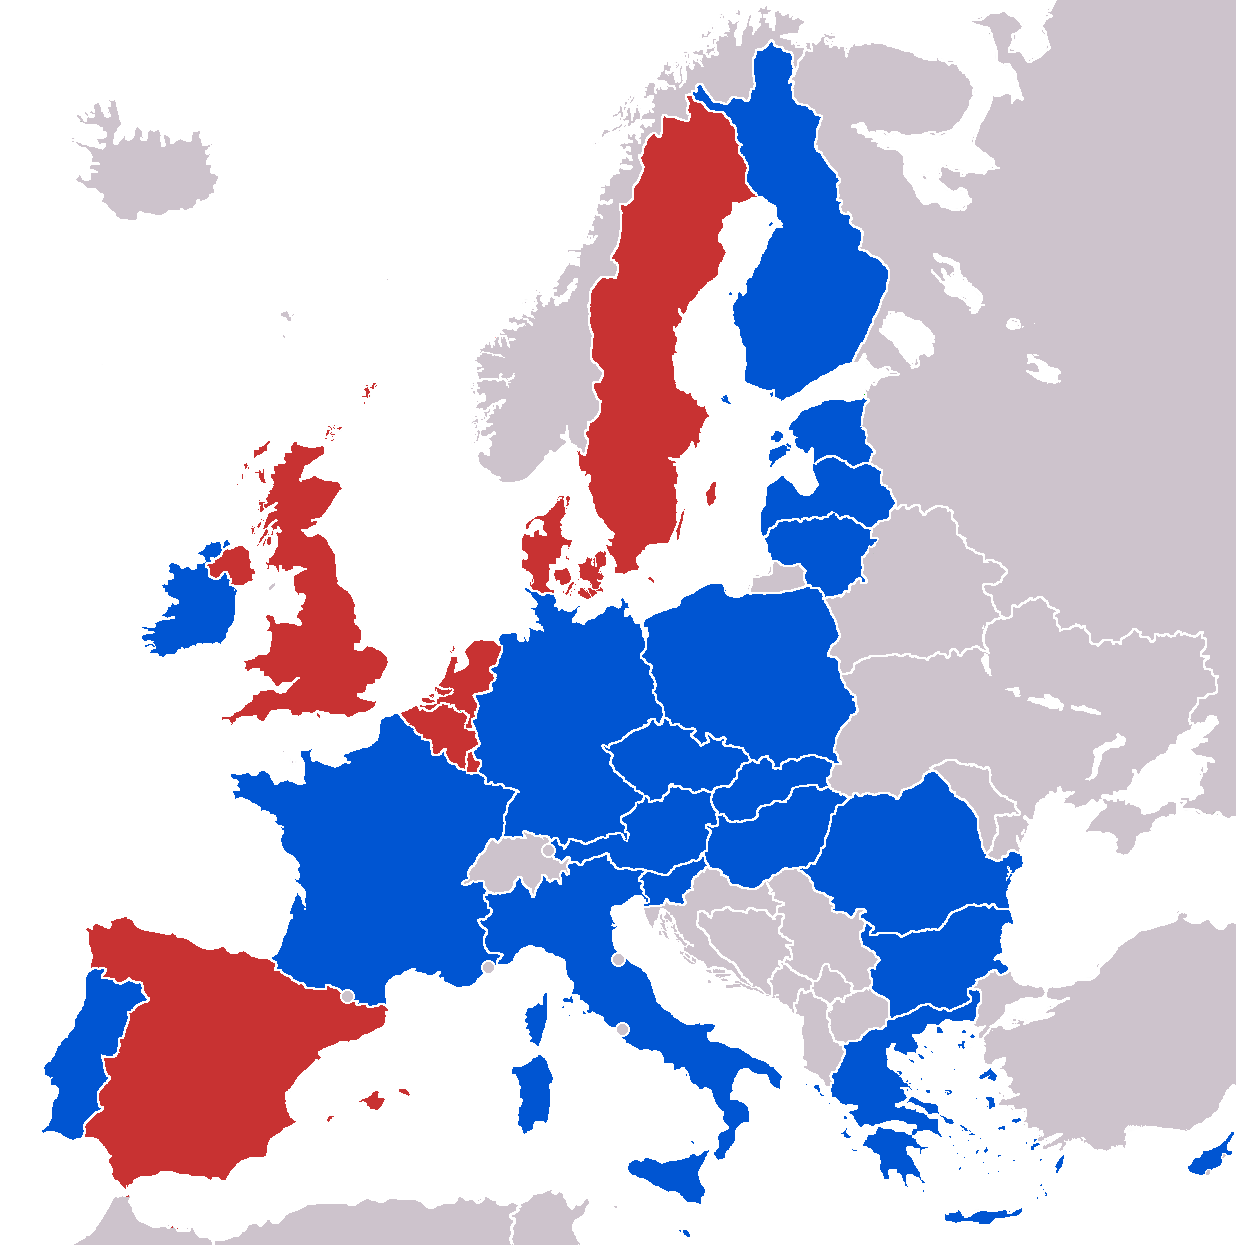 File:European Union member states by head of state.png.